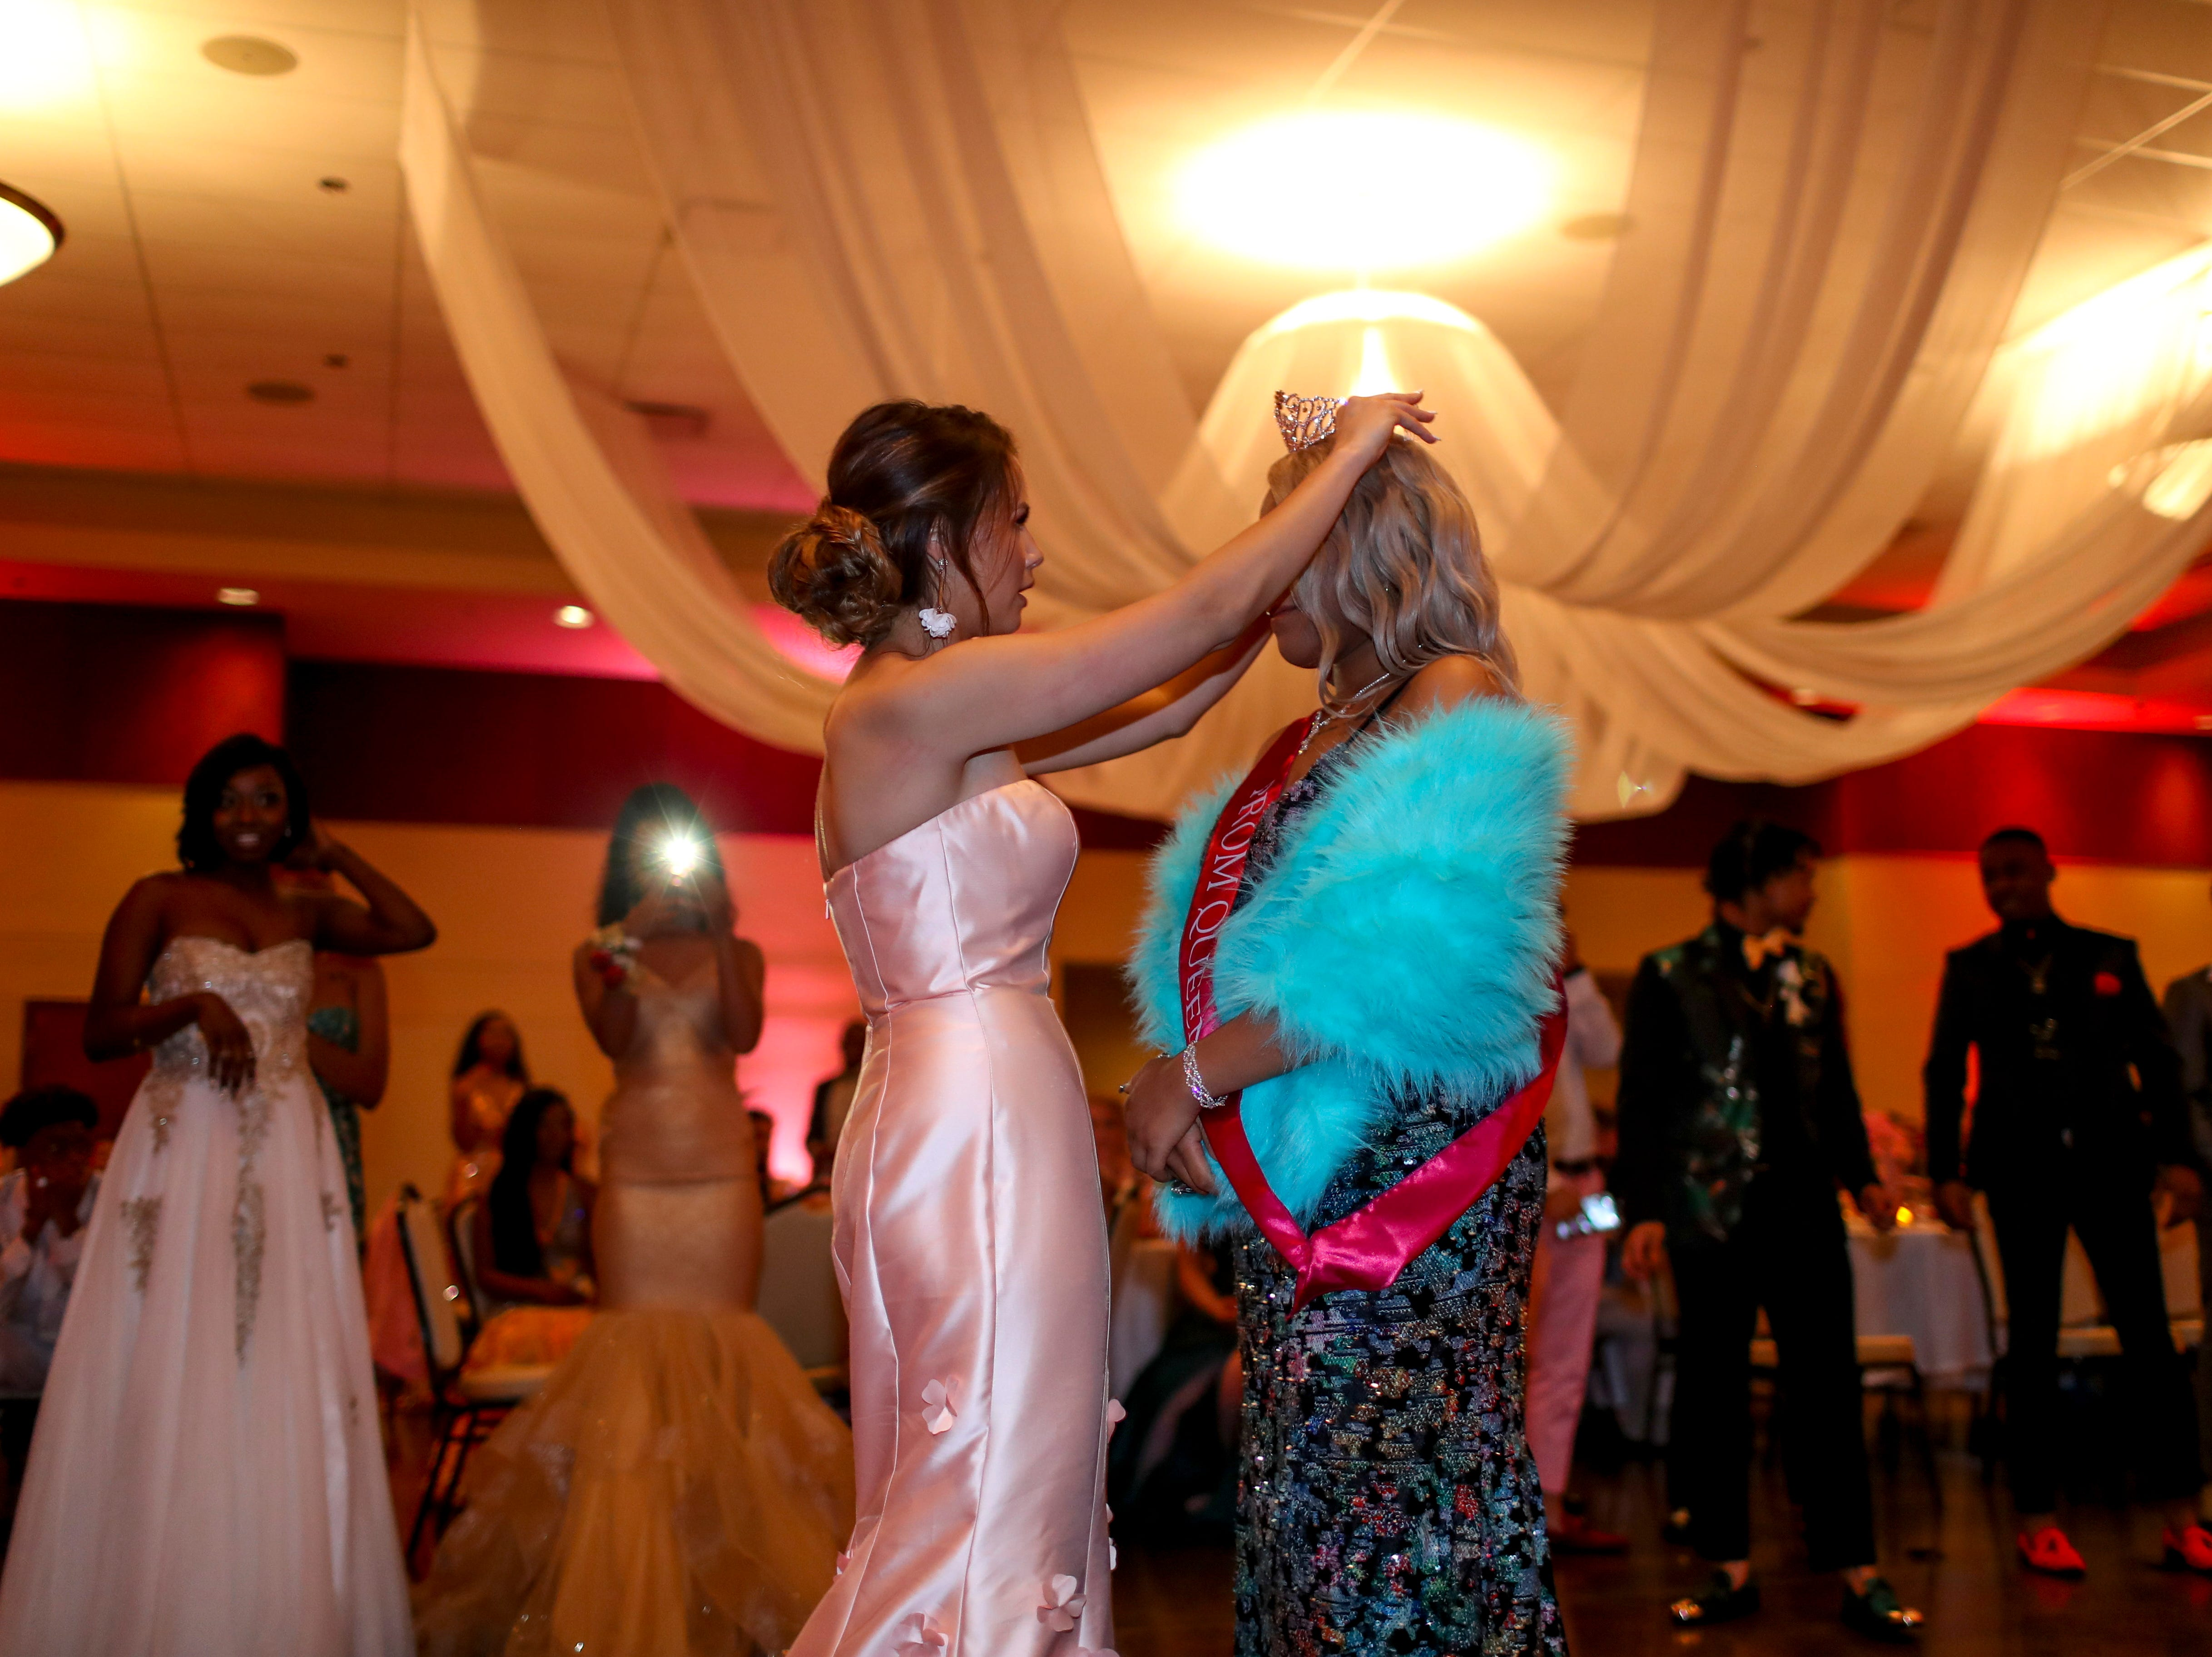 """Adannis Delis-Luna is crowned prom queen while hundreds of students from Kenwood High School celebrated their 2019 prom themed """"Cherish the Moment"""" at Valor Hall in Oak Grove, KY., on Saturday, May 4, 2019."""